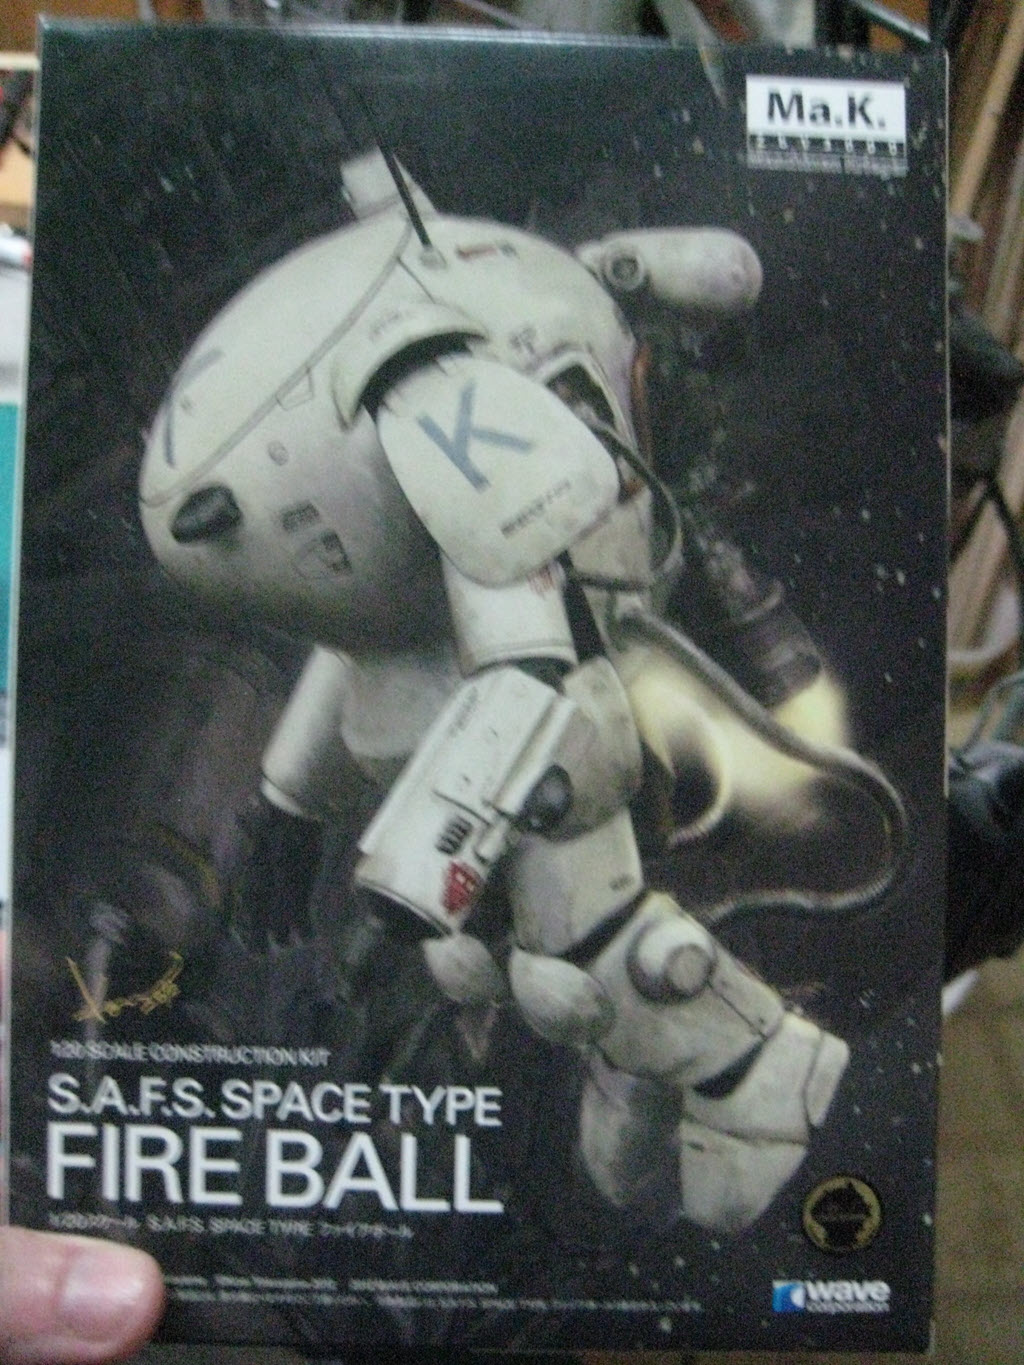 Ma.K. Fire Ball S.A.F.S. Space Type 185